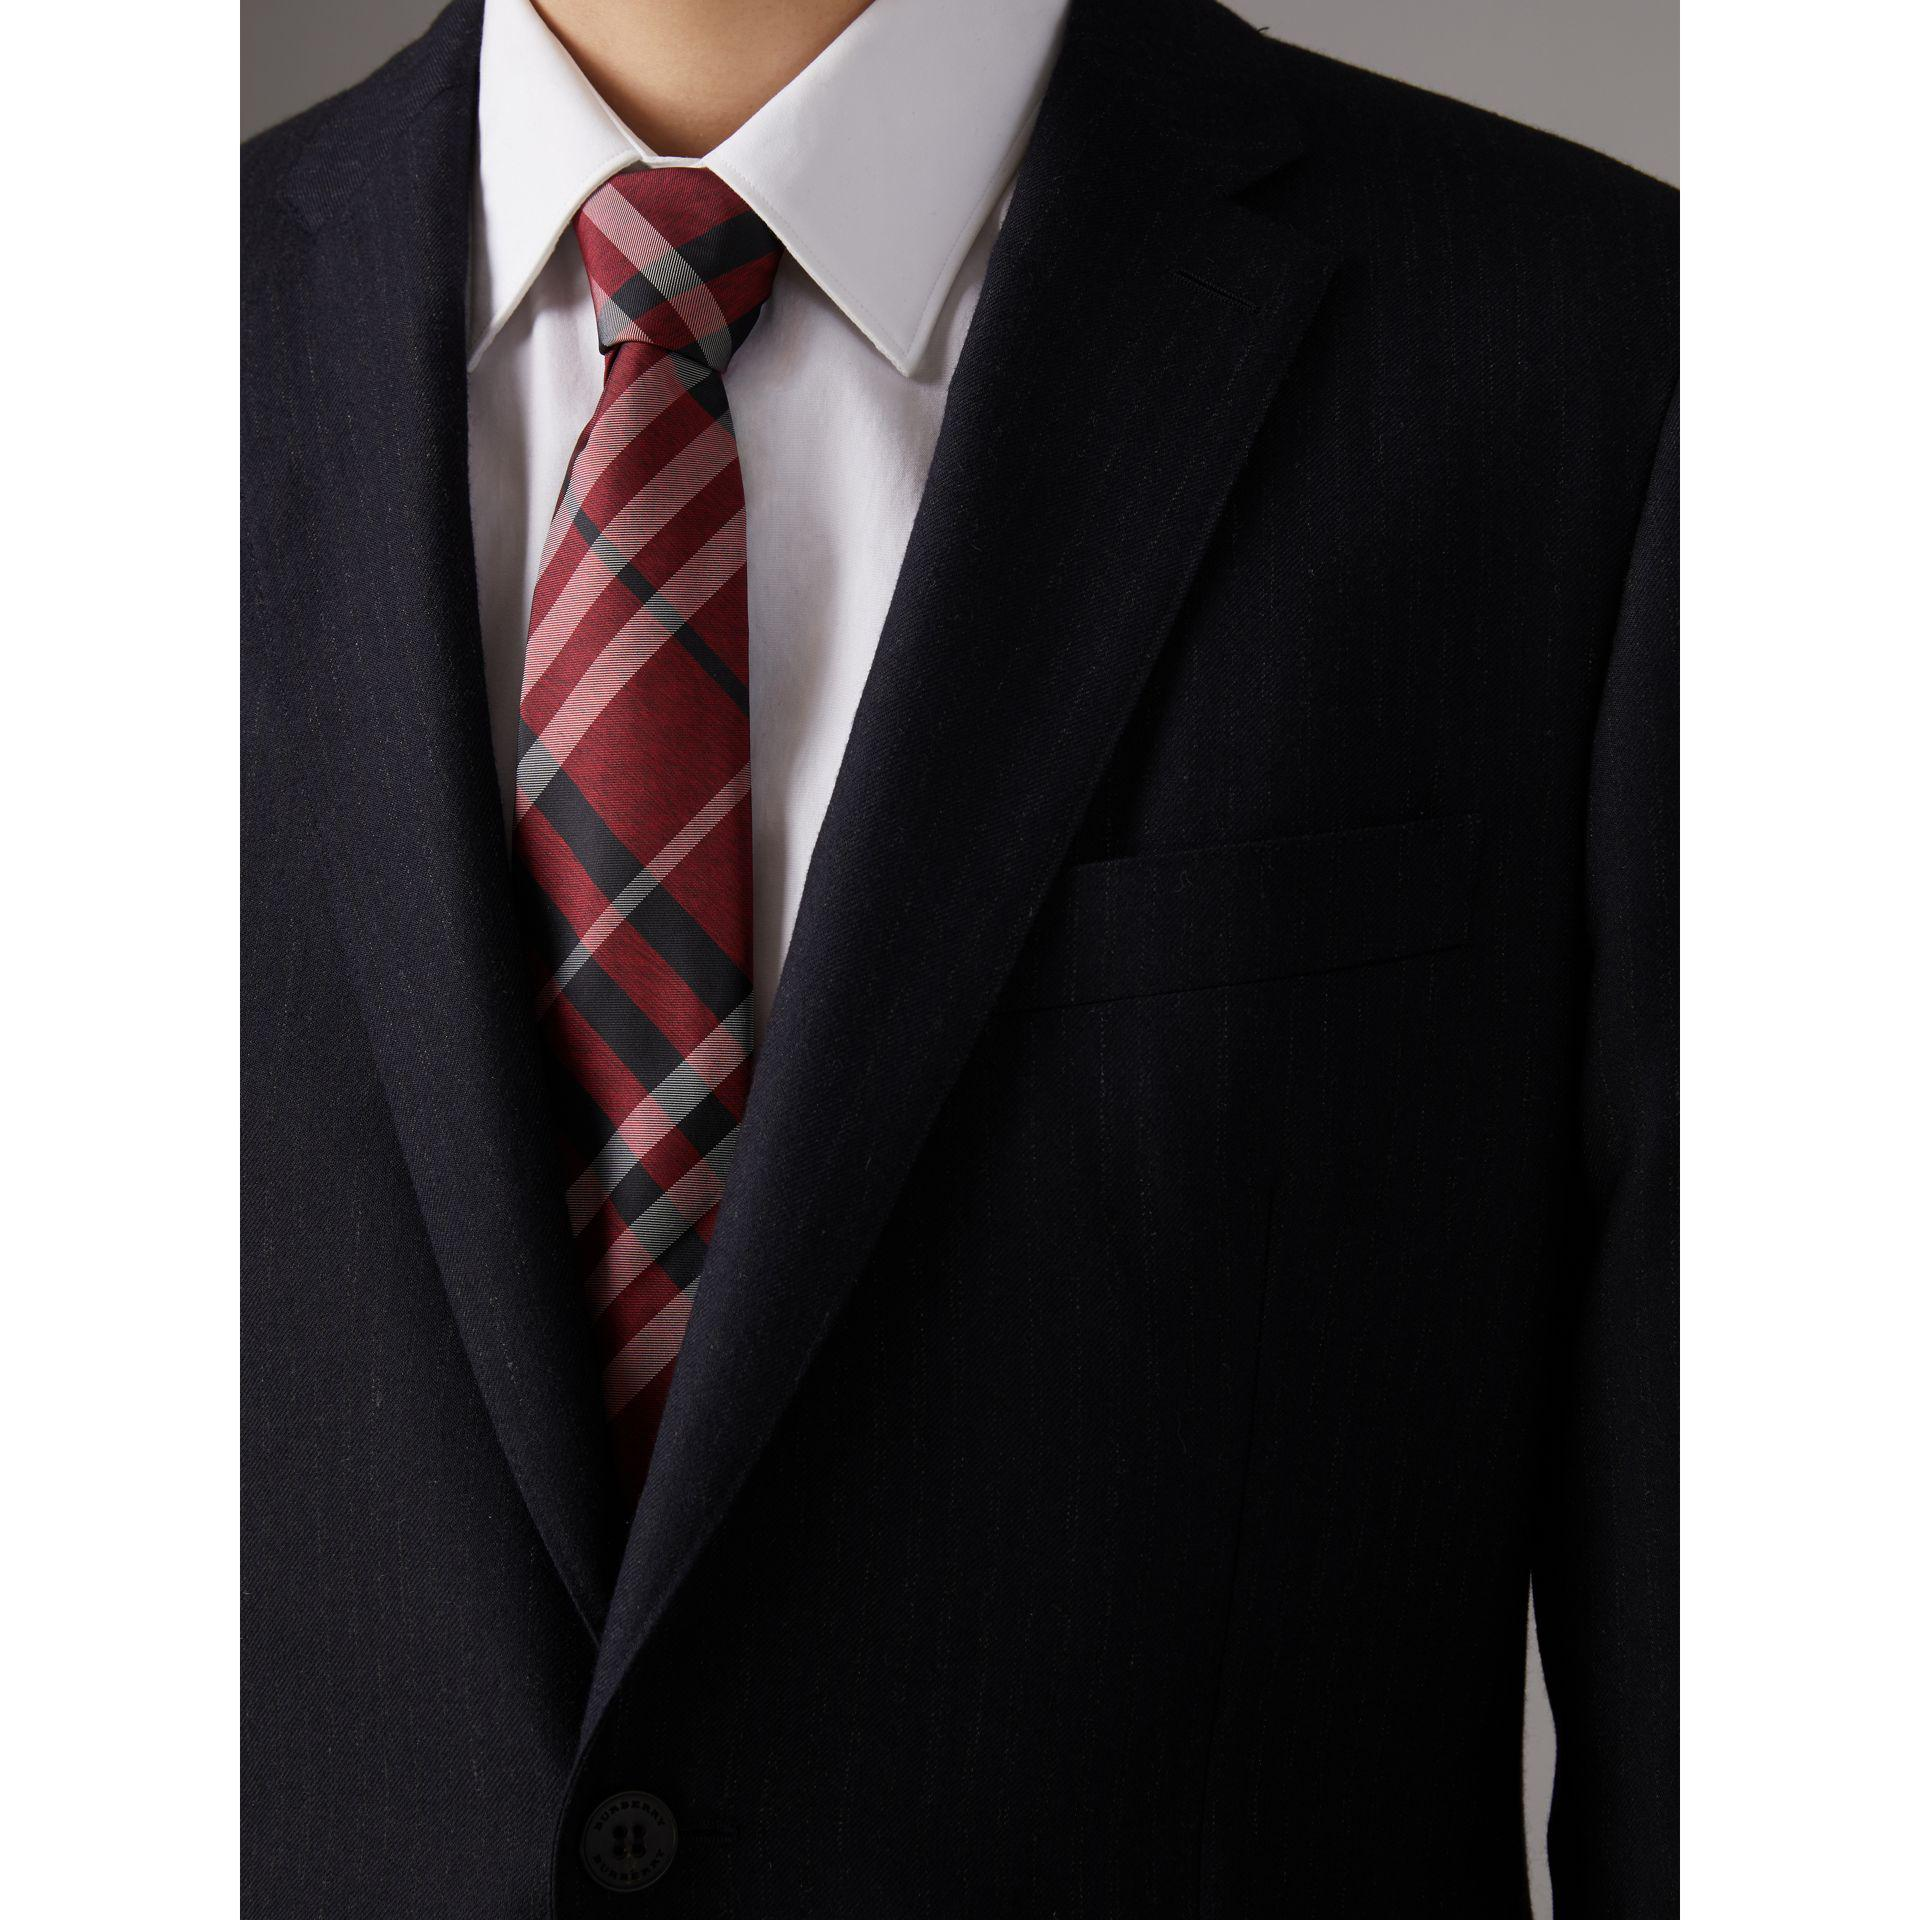 Modern Cut Check Tie - Red Burberry 4KuHrV